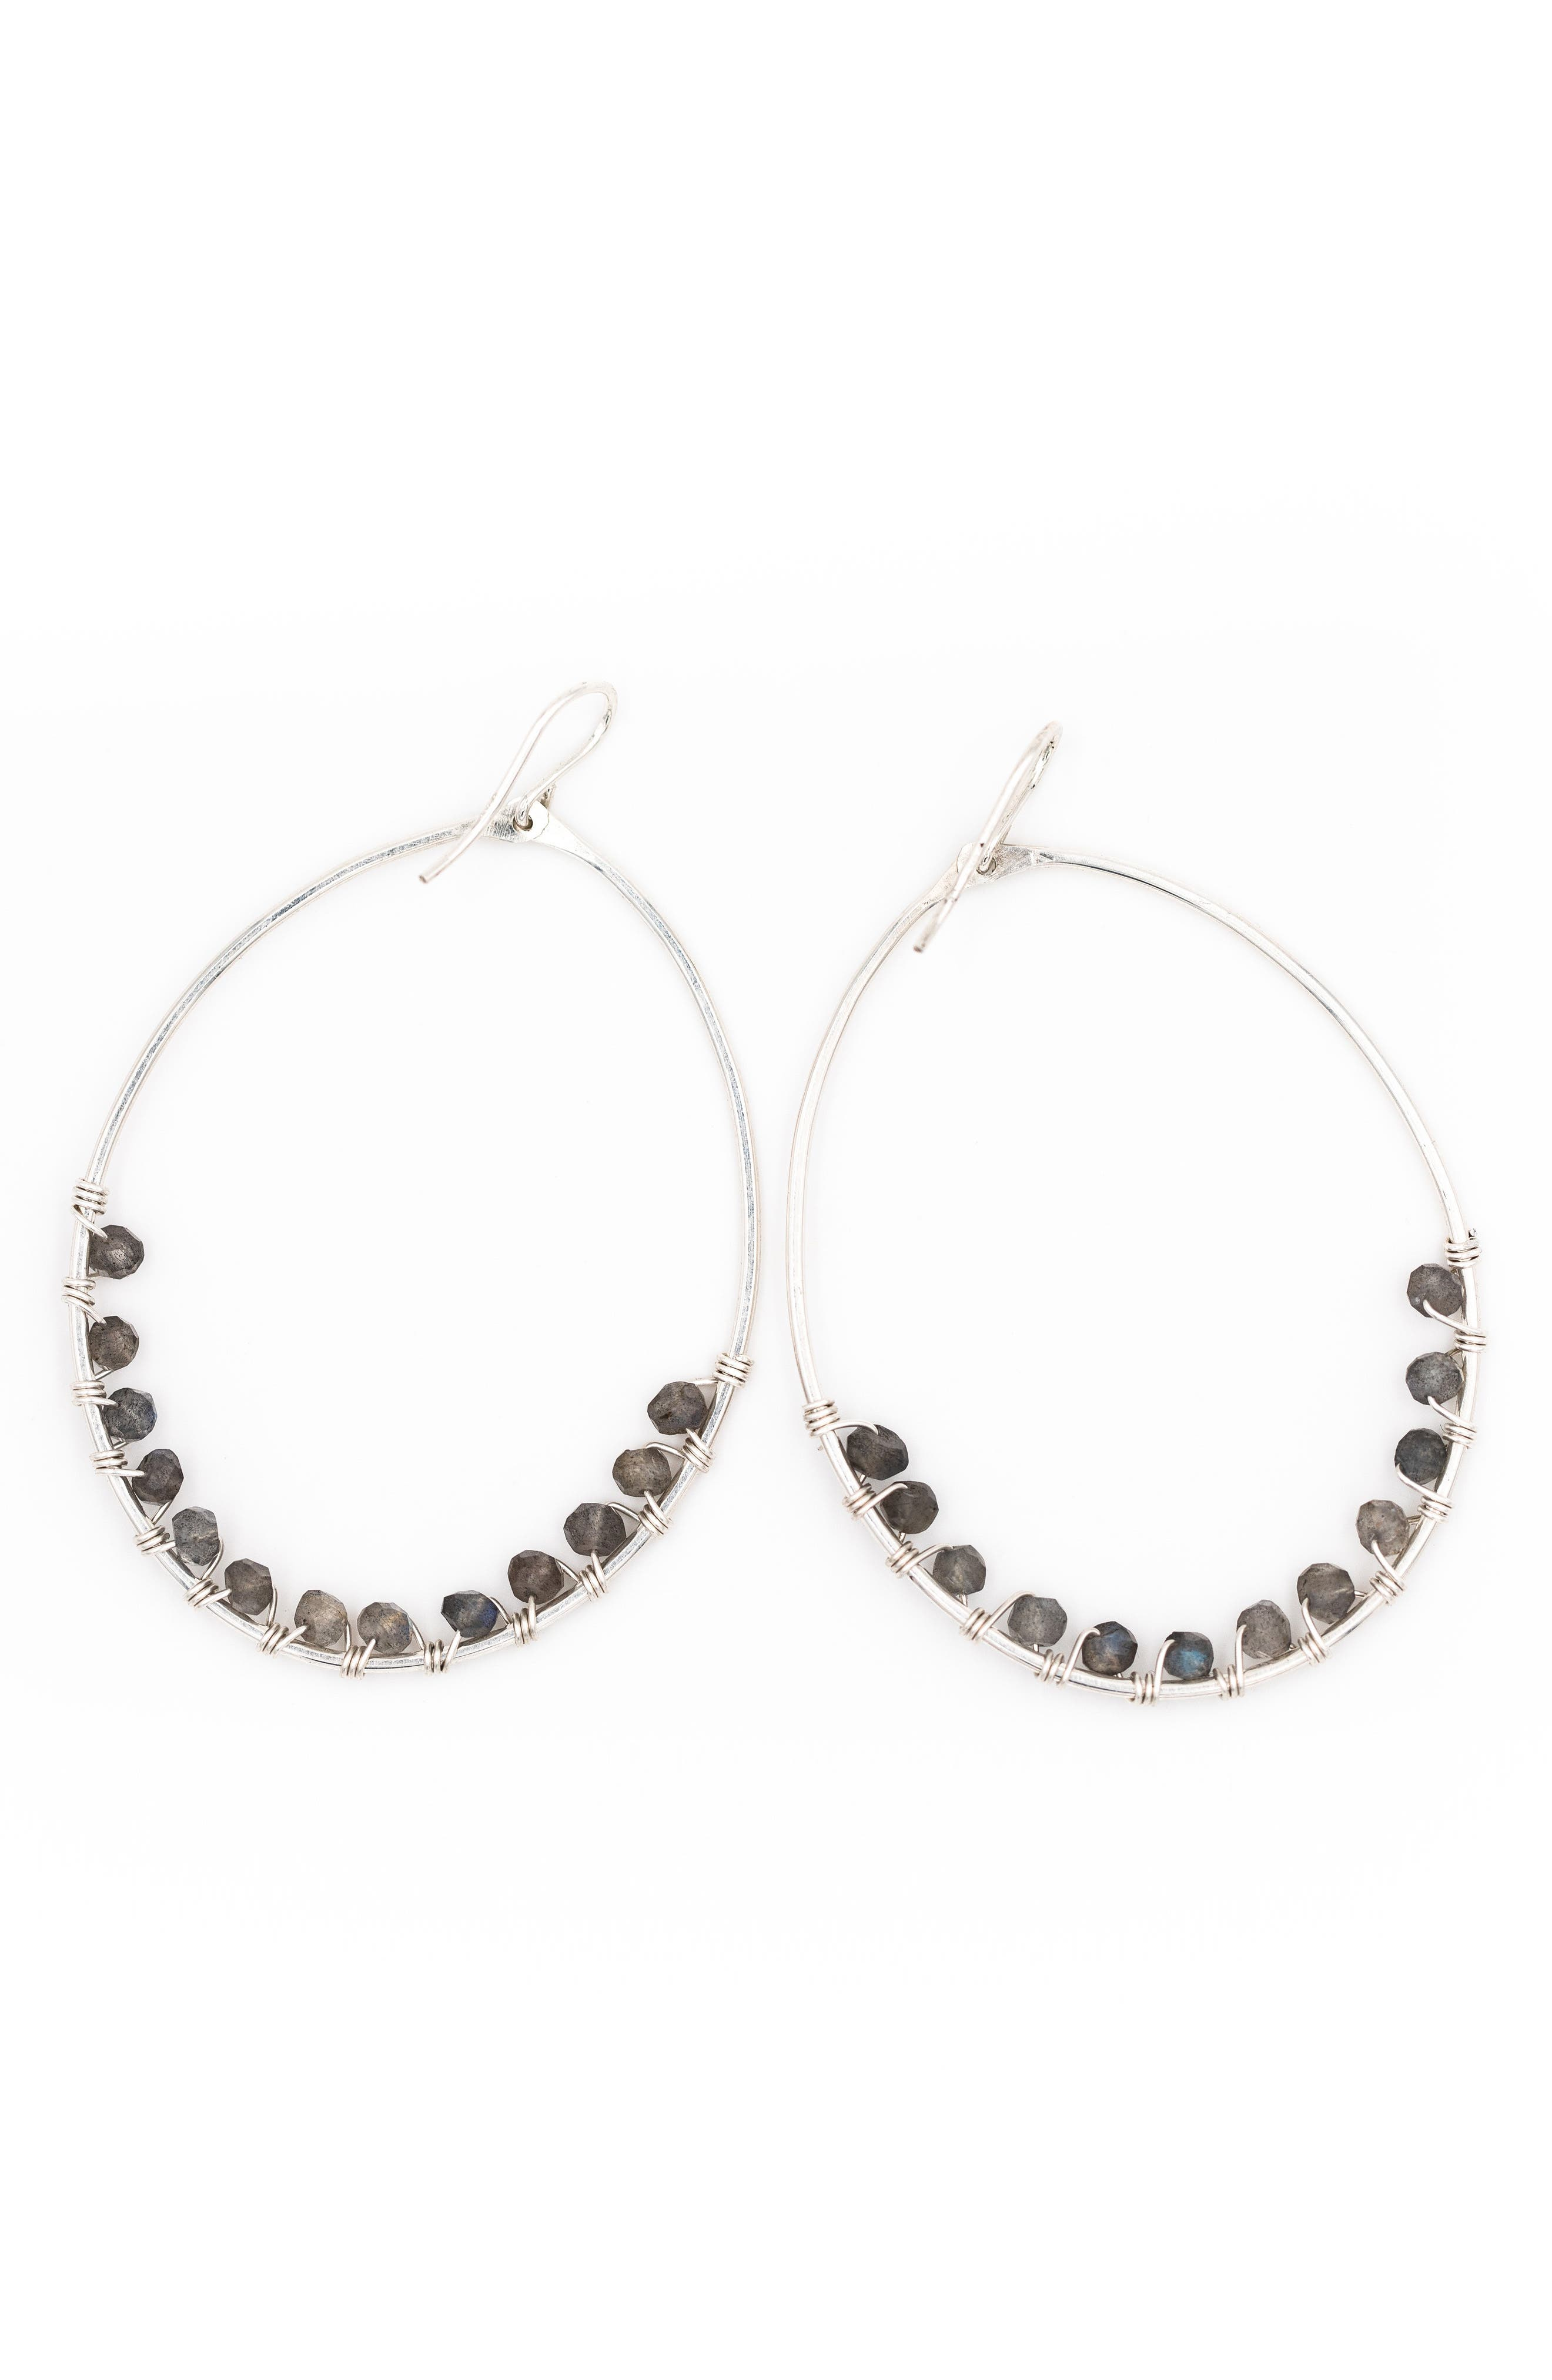 Lily Oval Hoop Earrings,                             Main thumbnail 1, color,                             SILVER